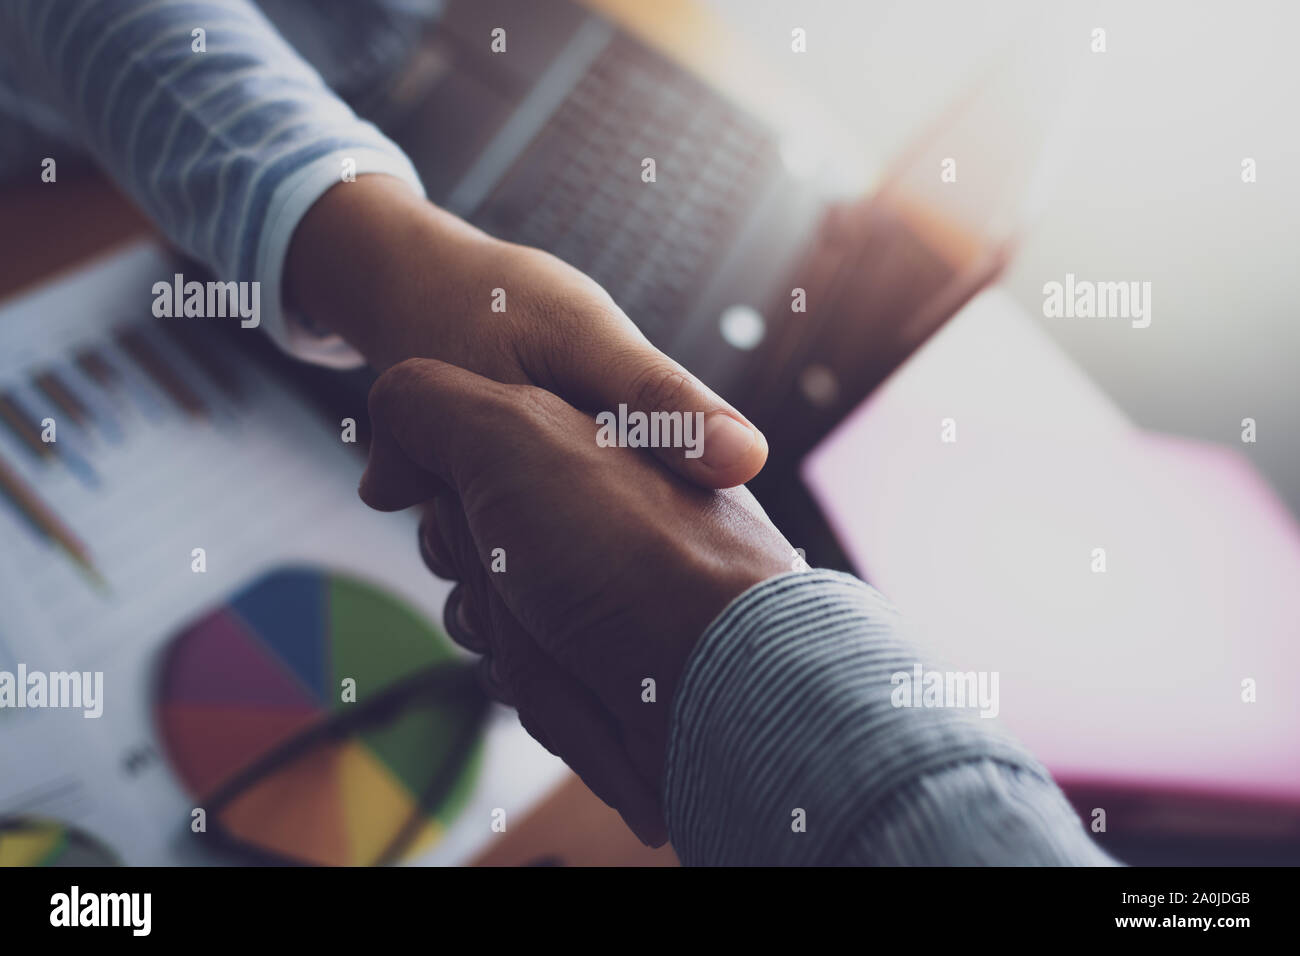 Two colleagues shaking hands together celebrating finished work. Business concept. Stock Photo